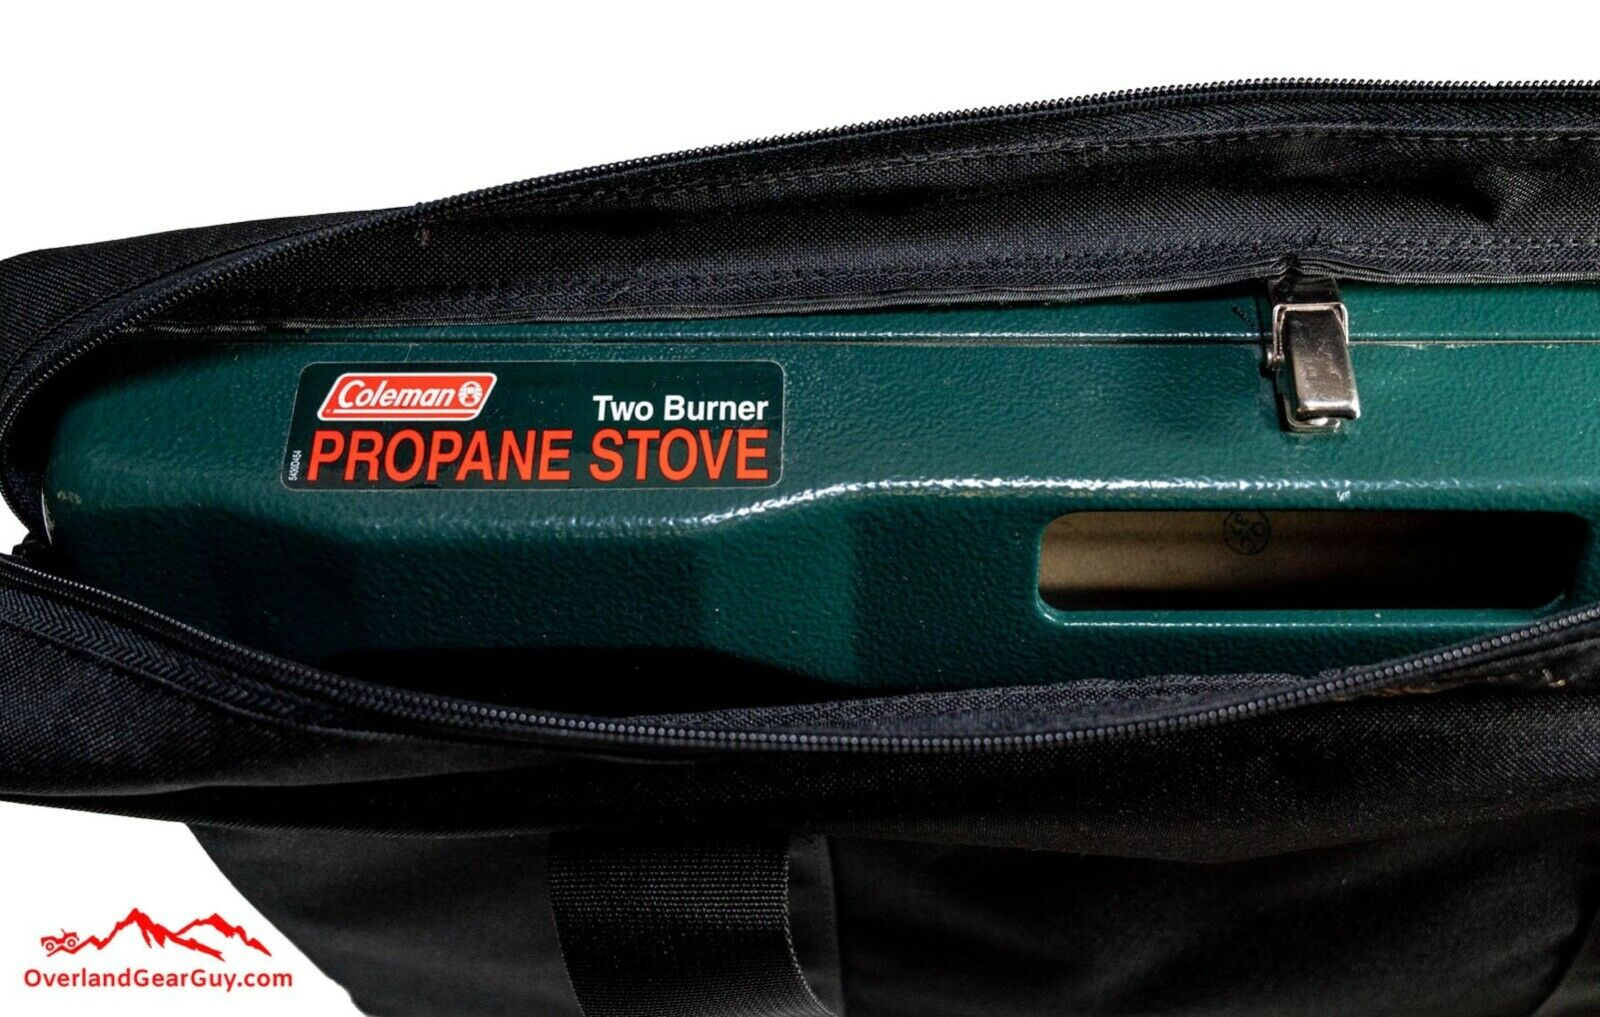 Coleman  2 Burner Stove Bag by Overland Gear Guy  supply quality product